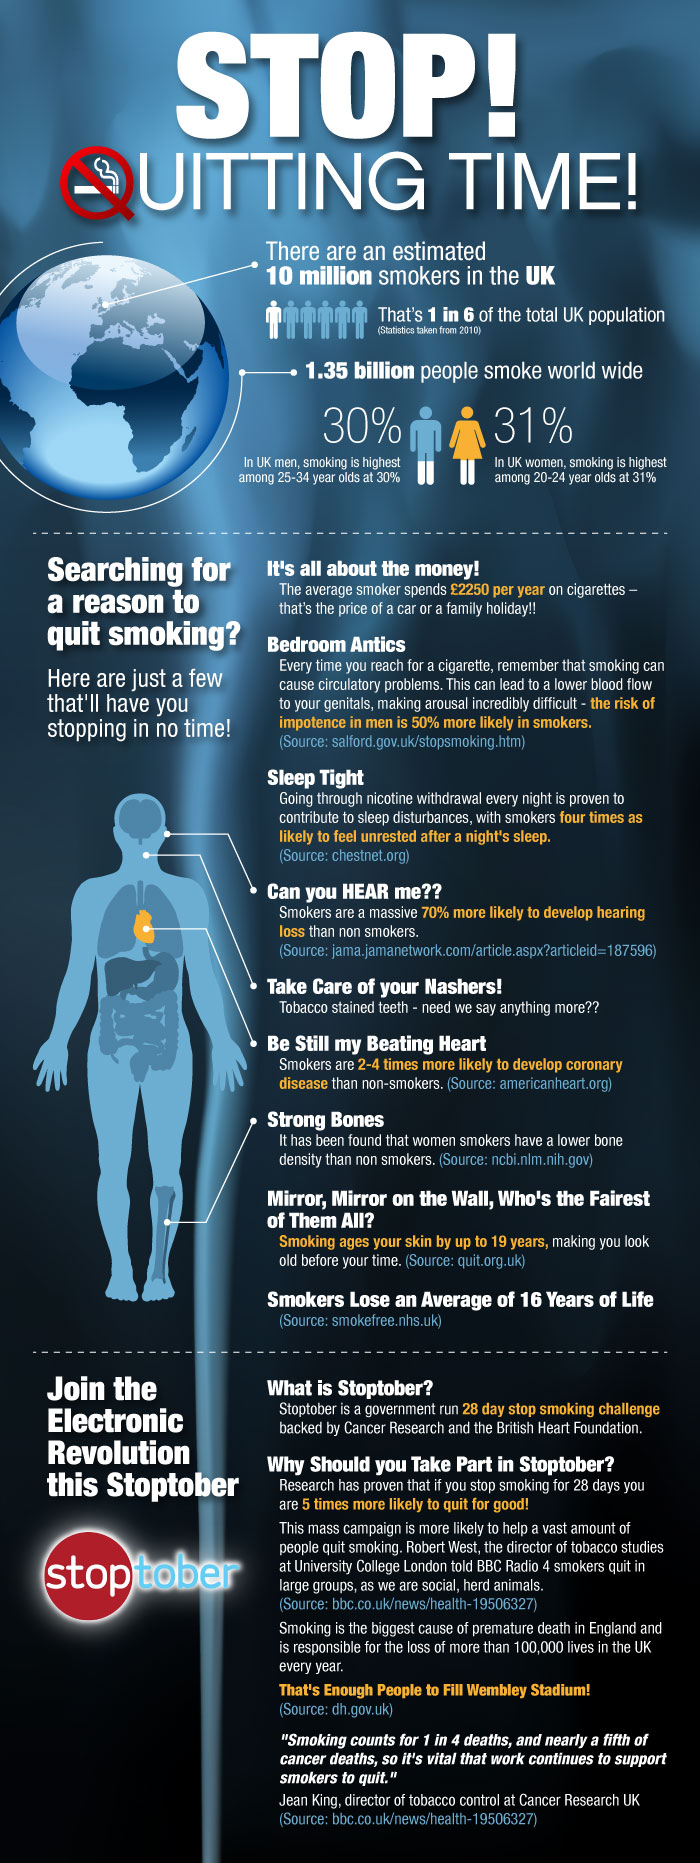 High Time You Stopped Smoking Infographic